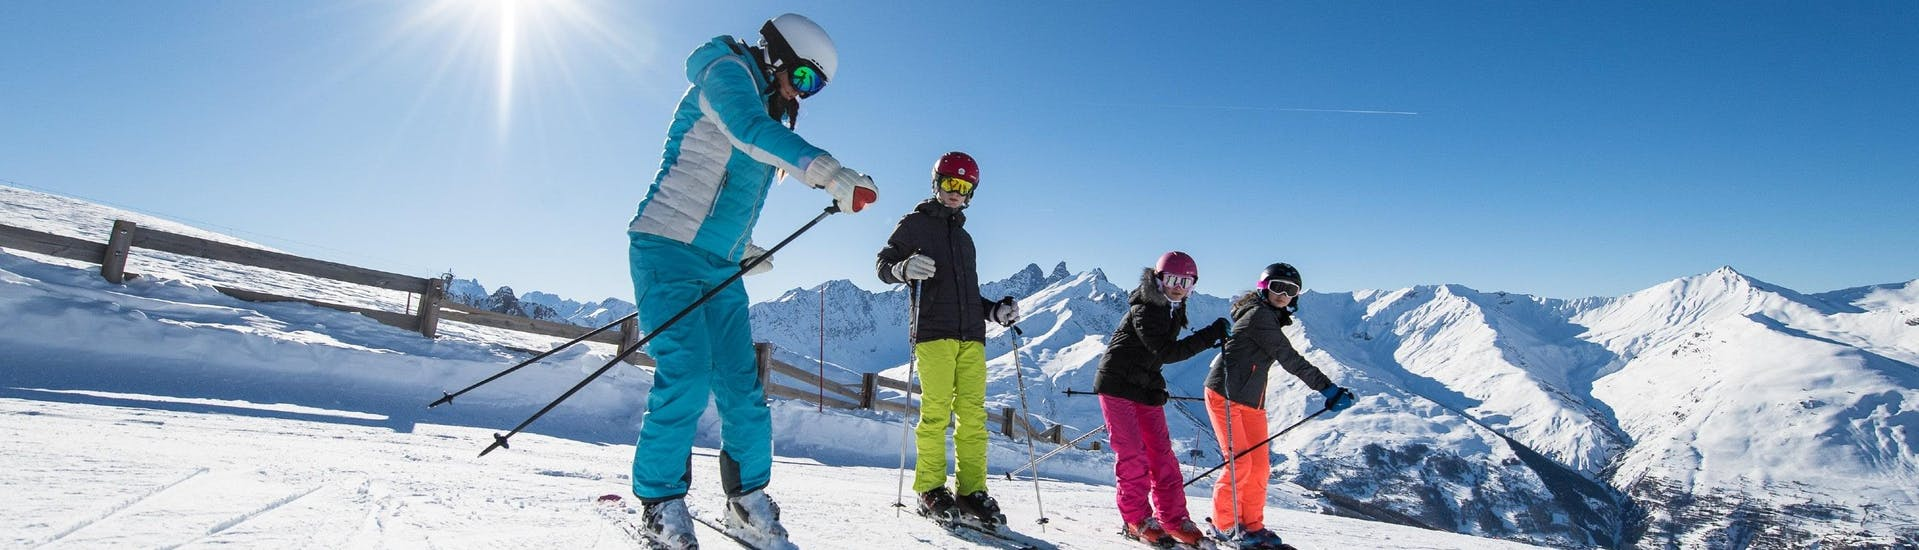 A ski instructor from ESI Alpe d'Huez - European Ski School is showing participants the right gestures during their Private Ski Lessons for Kids of All Levels - Low Season.